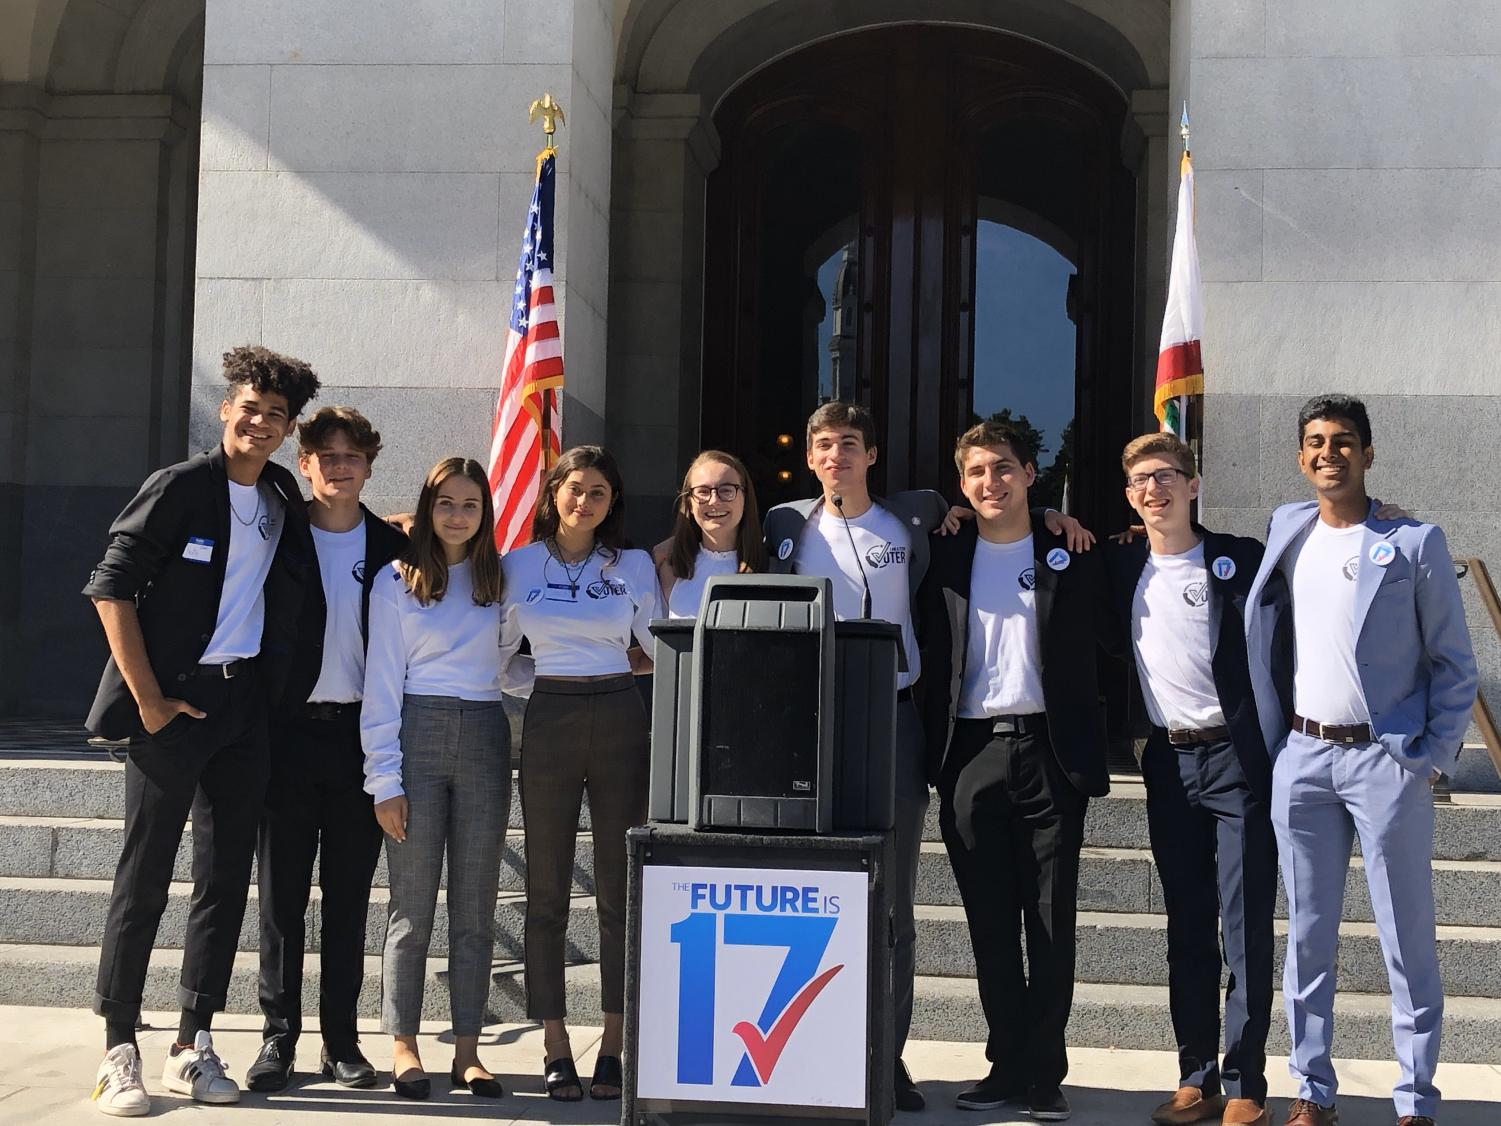 Oak Park High School student Alex Goldbeck and other students from around the state rally behind state senators to lower the voting age to 17 at Sacramento Capital.